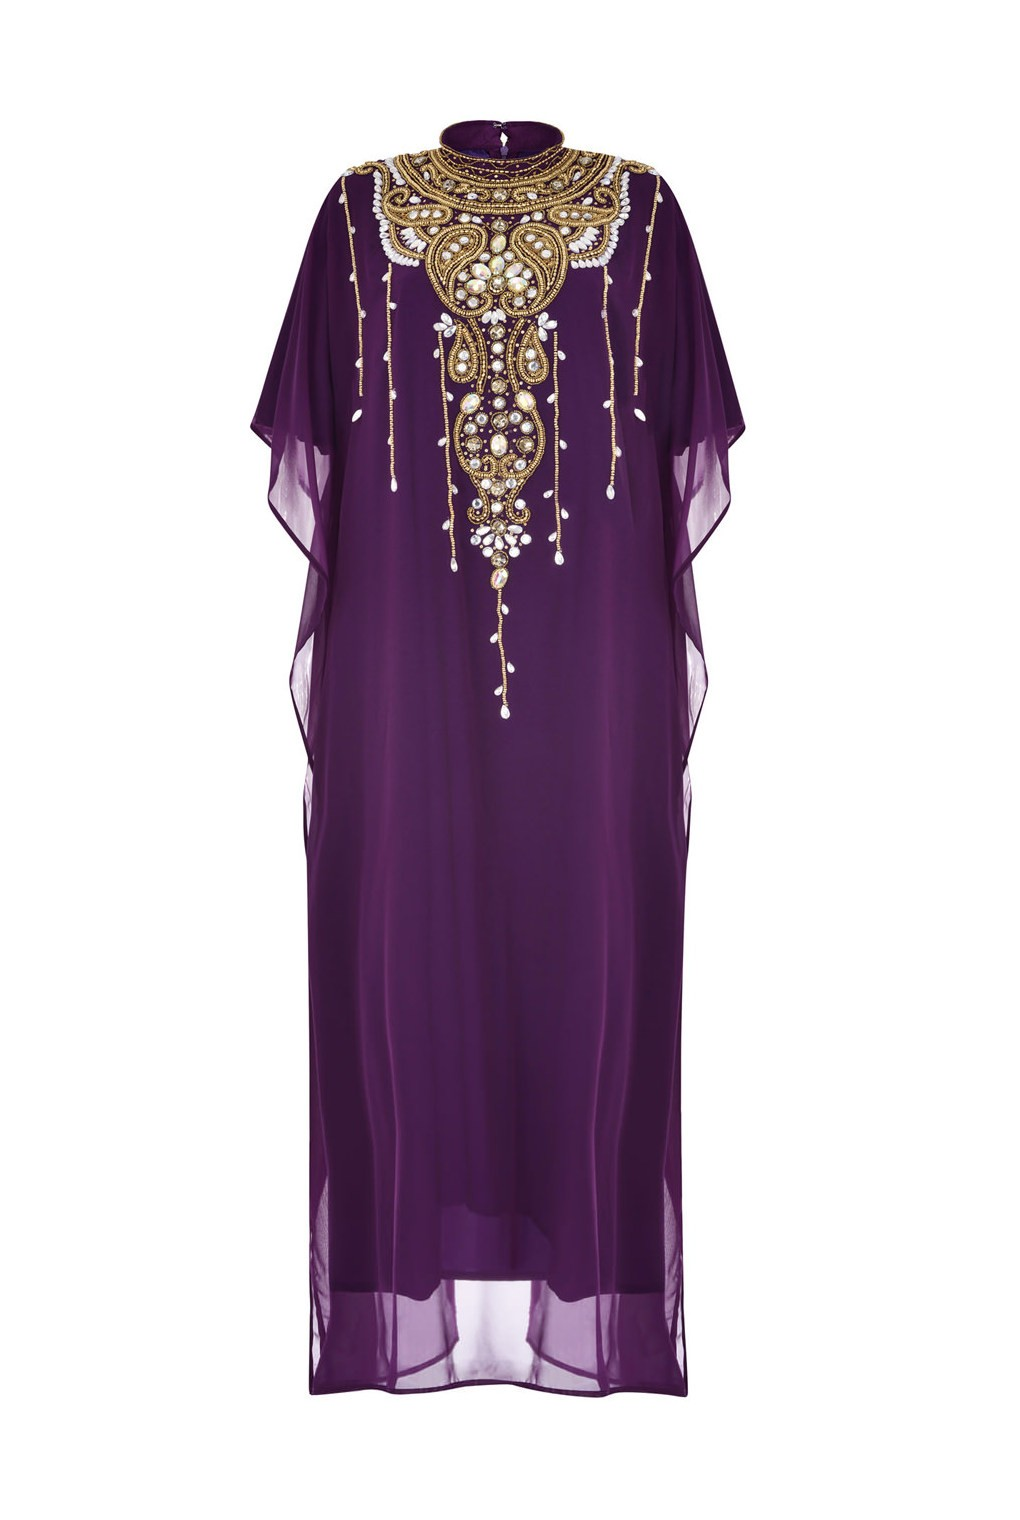 Mana Dubai Kaftan Dress Image